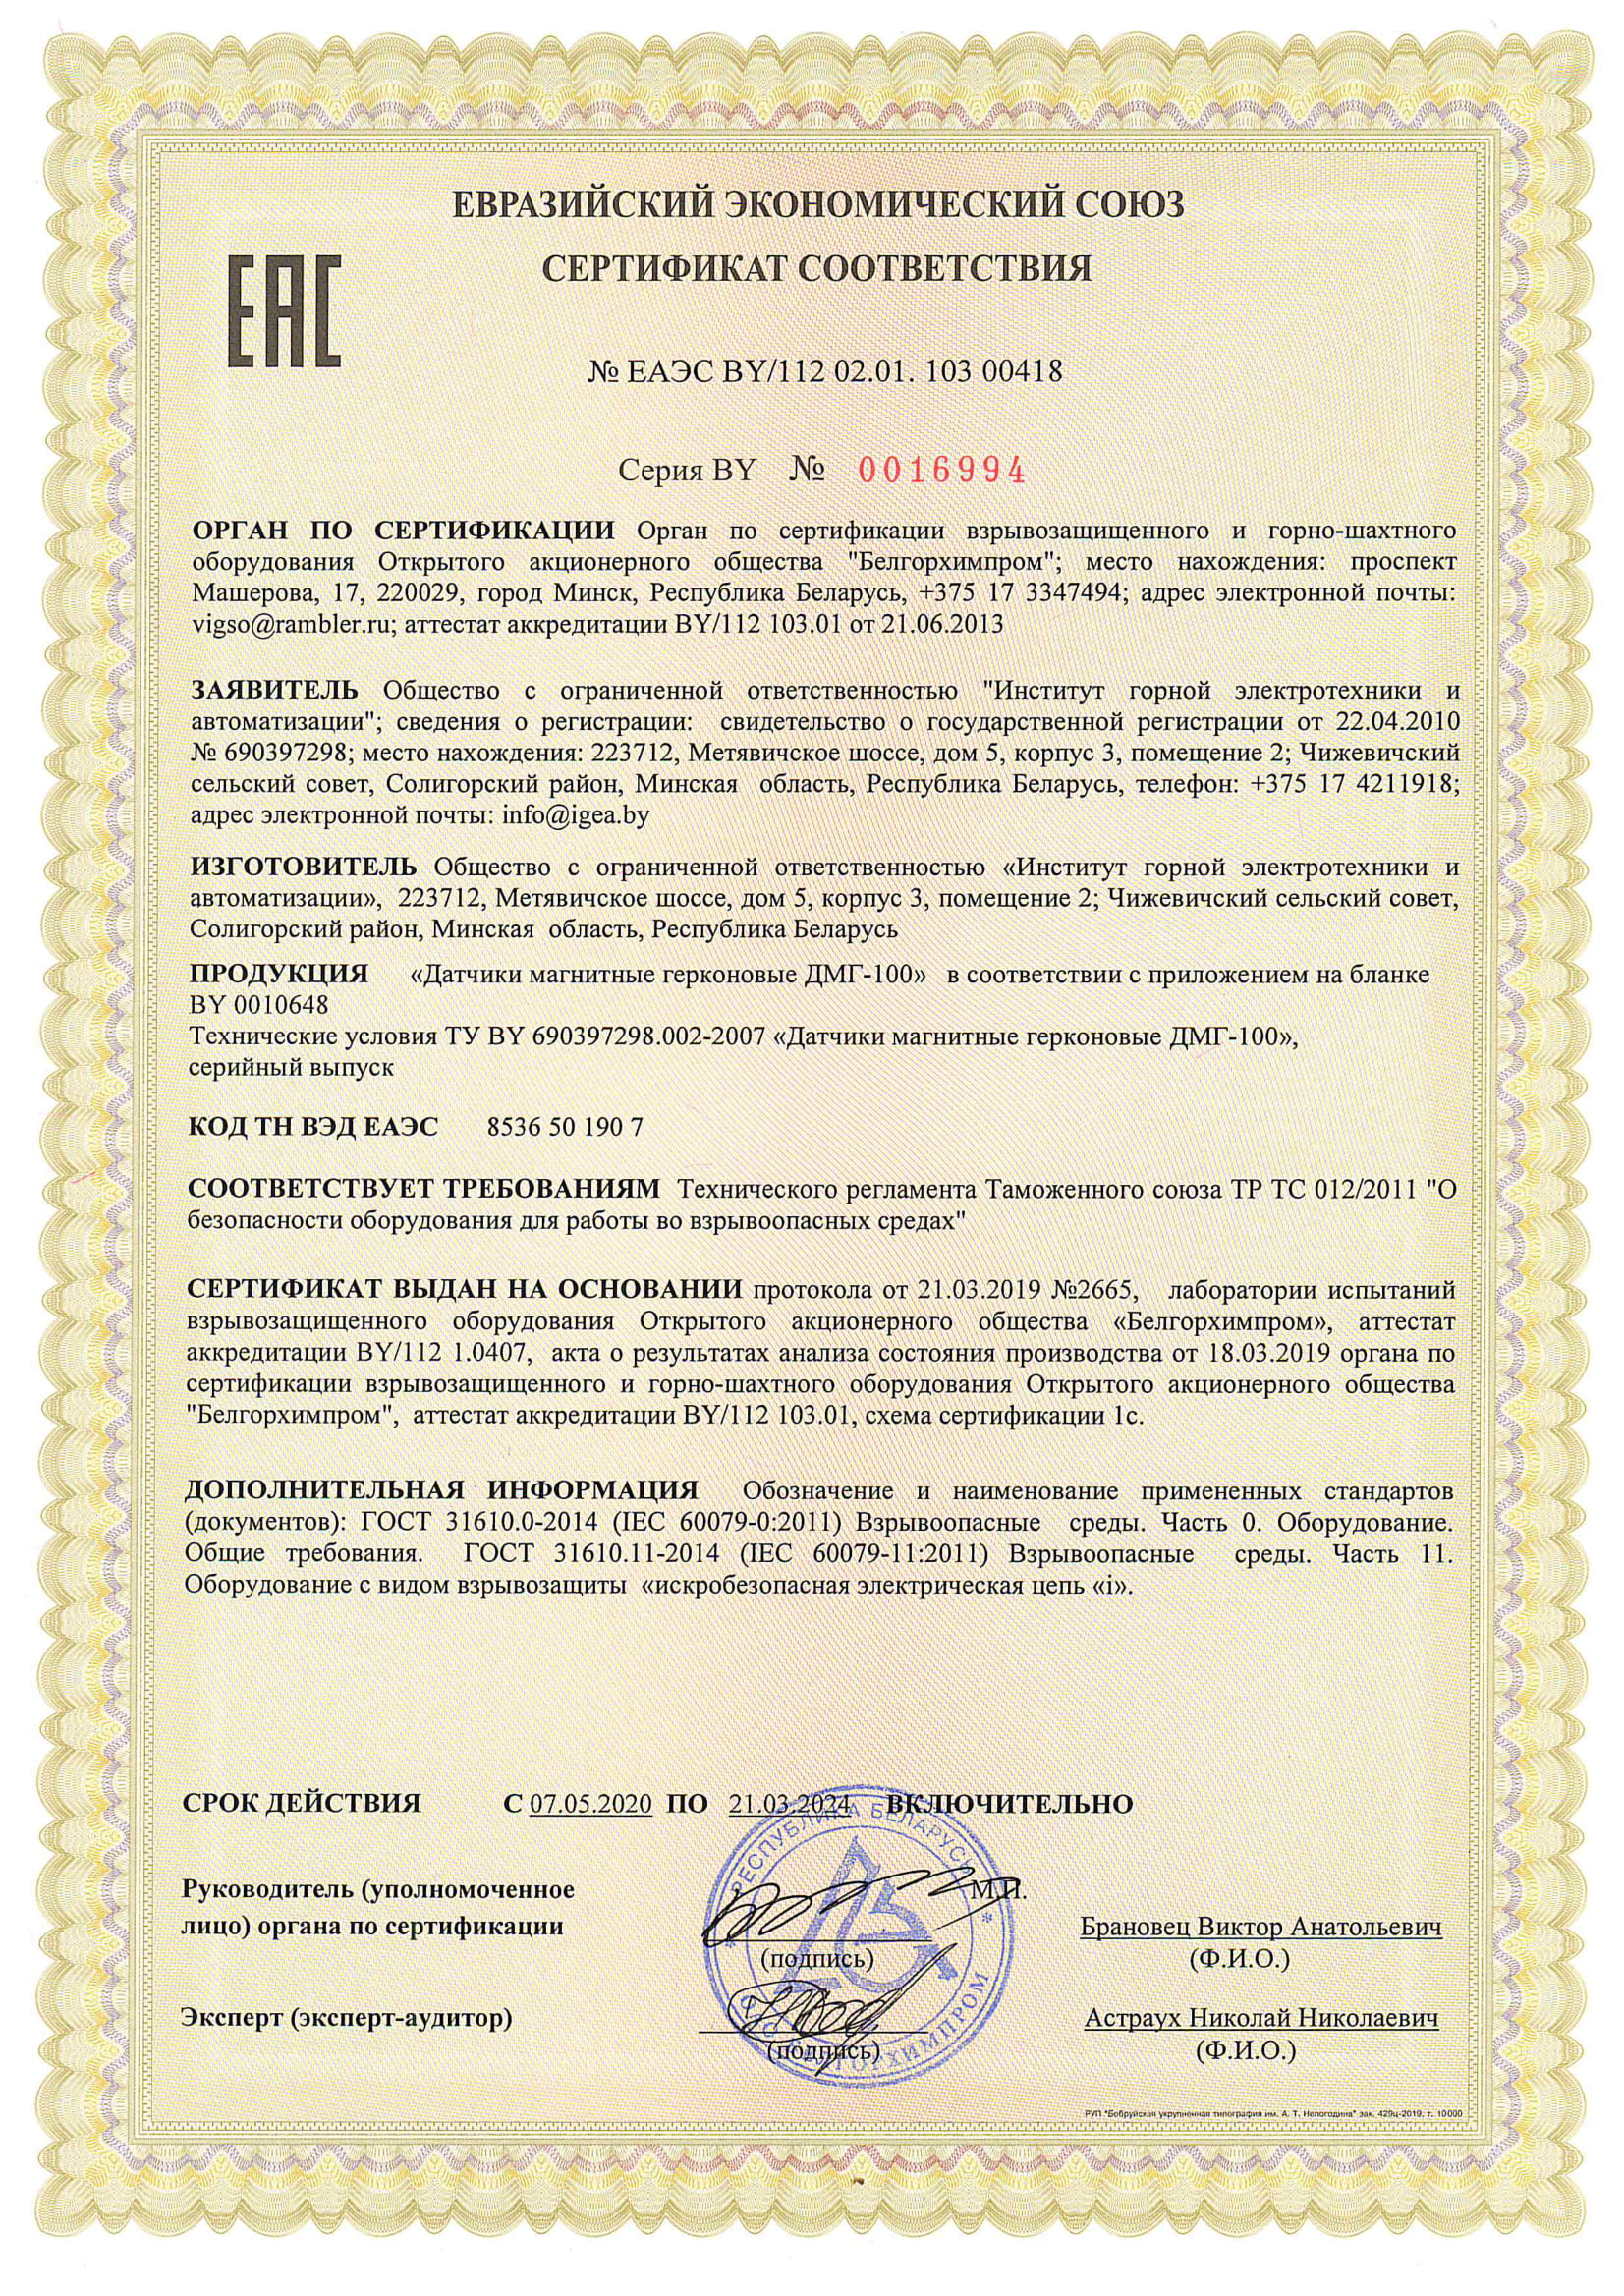 Certificate of conformity to CU TR 012/2011 No.ЕАЭС BY/112 02.01.103 00418 valid till 21.03.2024